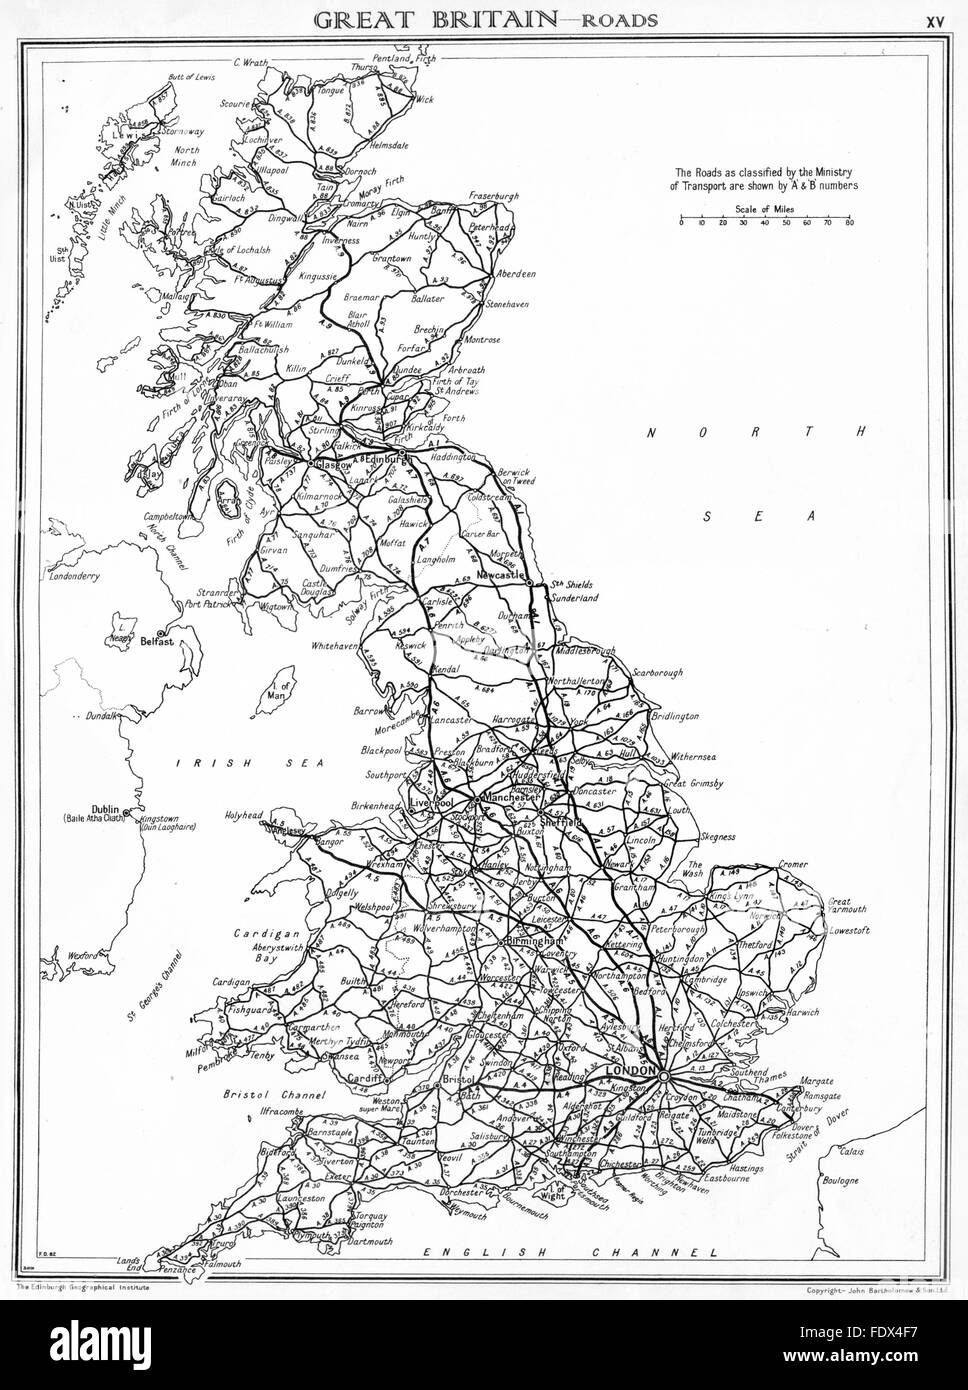 Map Of England Great Britain.Great Britain Map Black And White Stock Photos Images Alamy